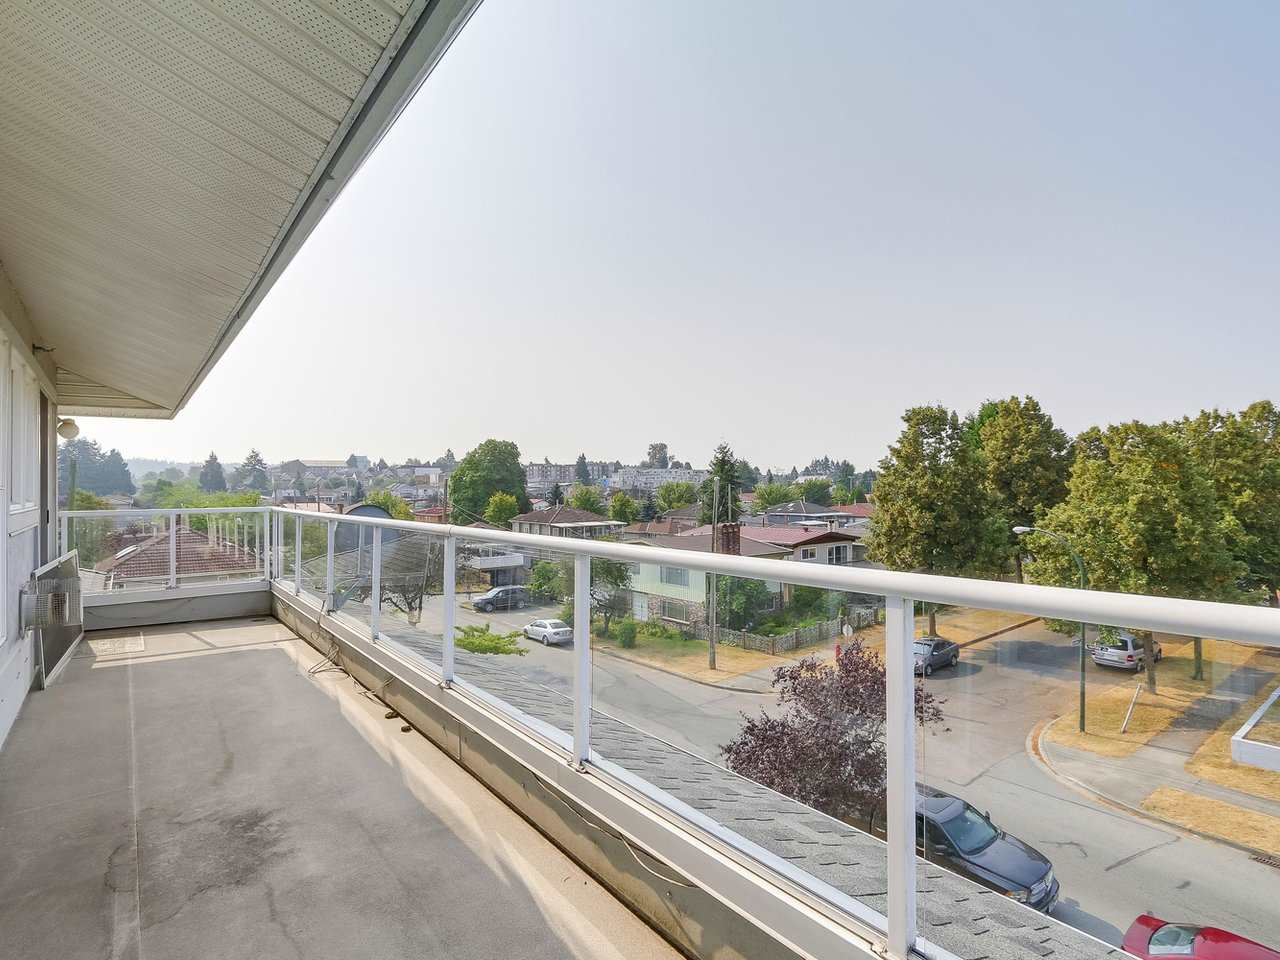 Condo Apartment at 405 2965 HORLEY STREET, Unit 405, Vancouver East, British Columbia. Image 1